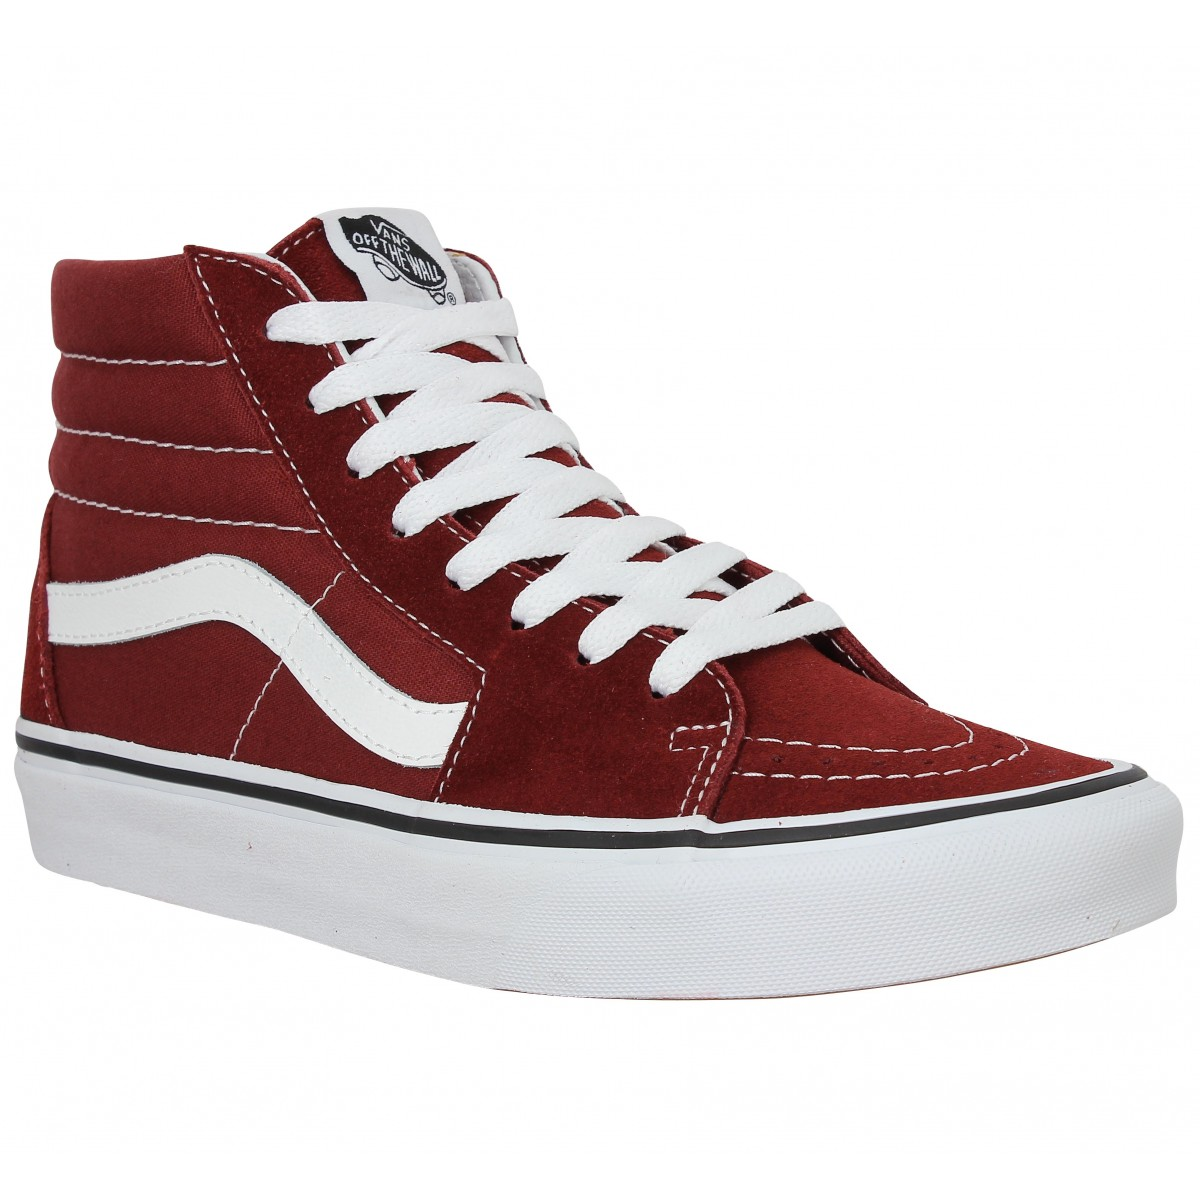 soldes vans sk8 hi velours toile madder brown femme homme fanny chaussures. Black Bedroom Furniture Sets. Home Design Ideas